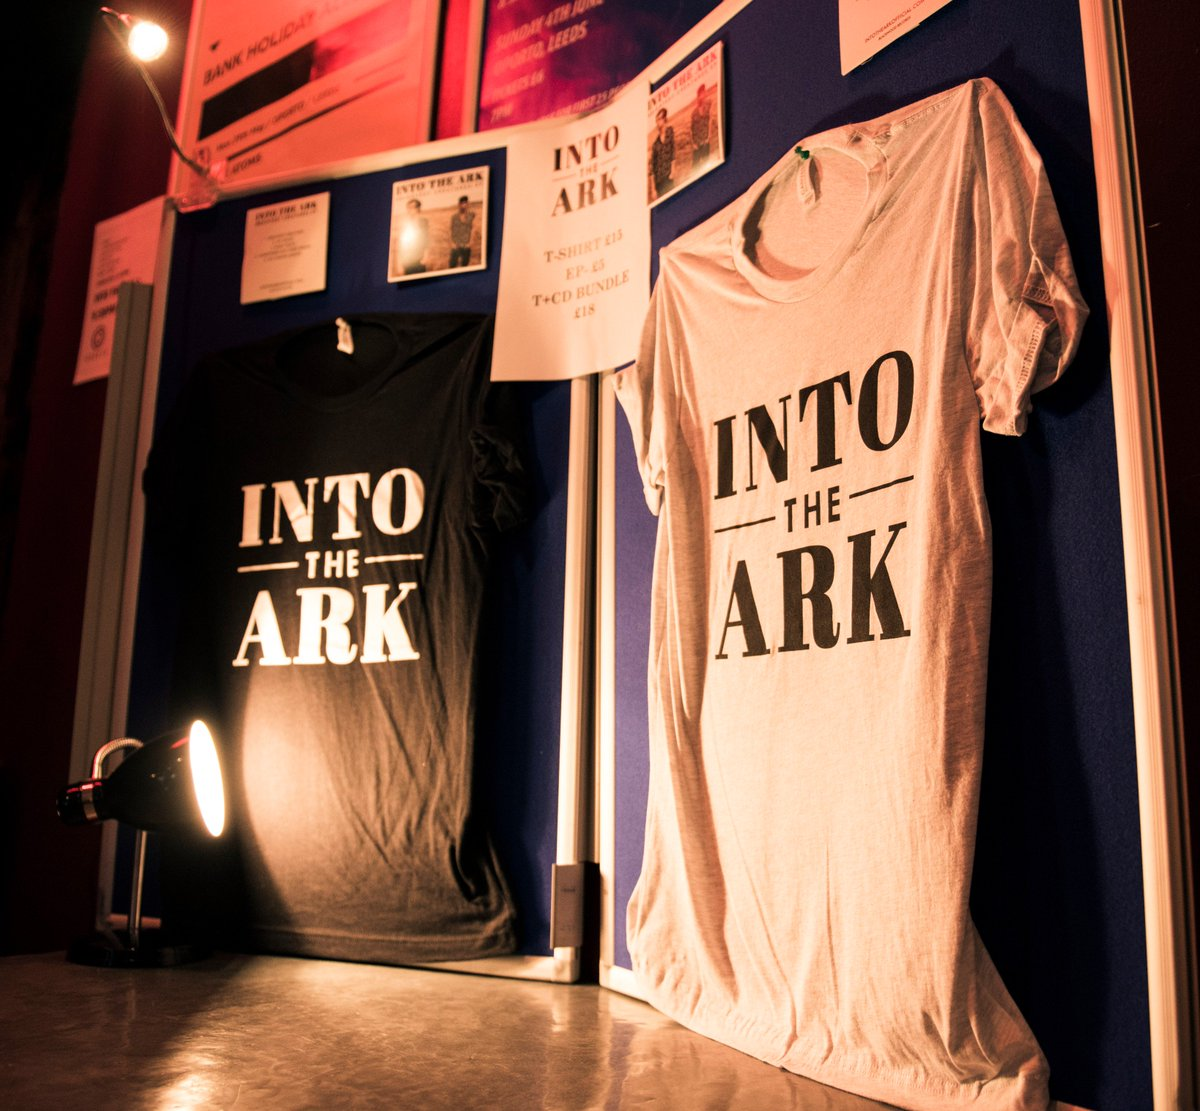 It&#39;d be sick to see shots of you in your merch from tour...tag us and we&#39;ll retweet! And get to  http:// intotheark.tmstor.es  &nbsp;   yesss  #tour #merch<br>http://pic.twitter.com/rMUS5Ndd6z